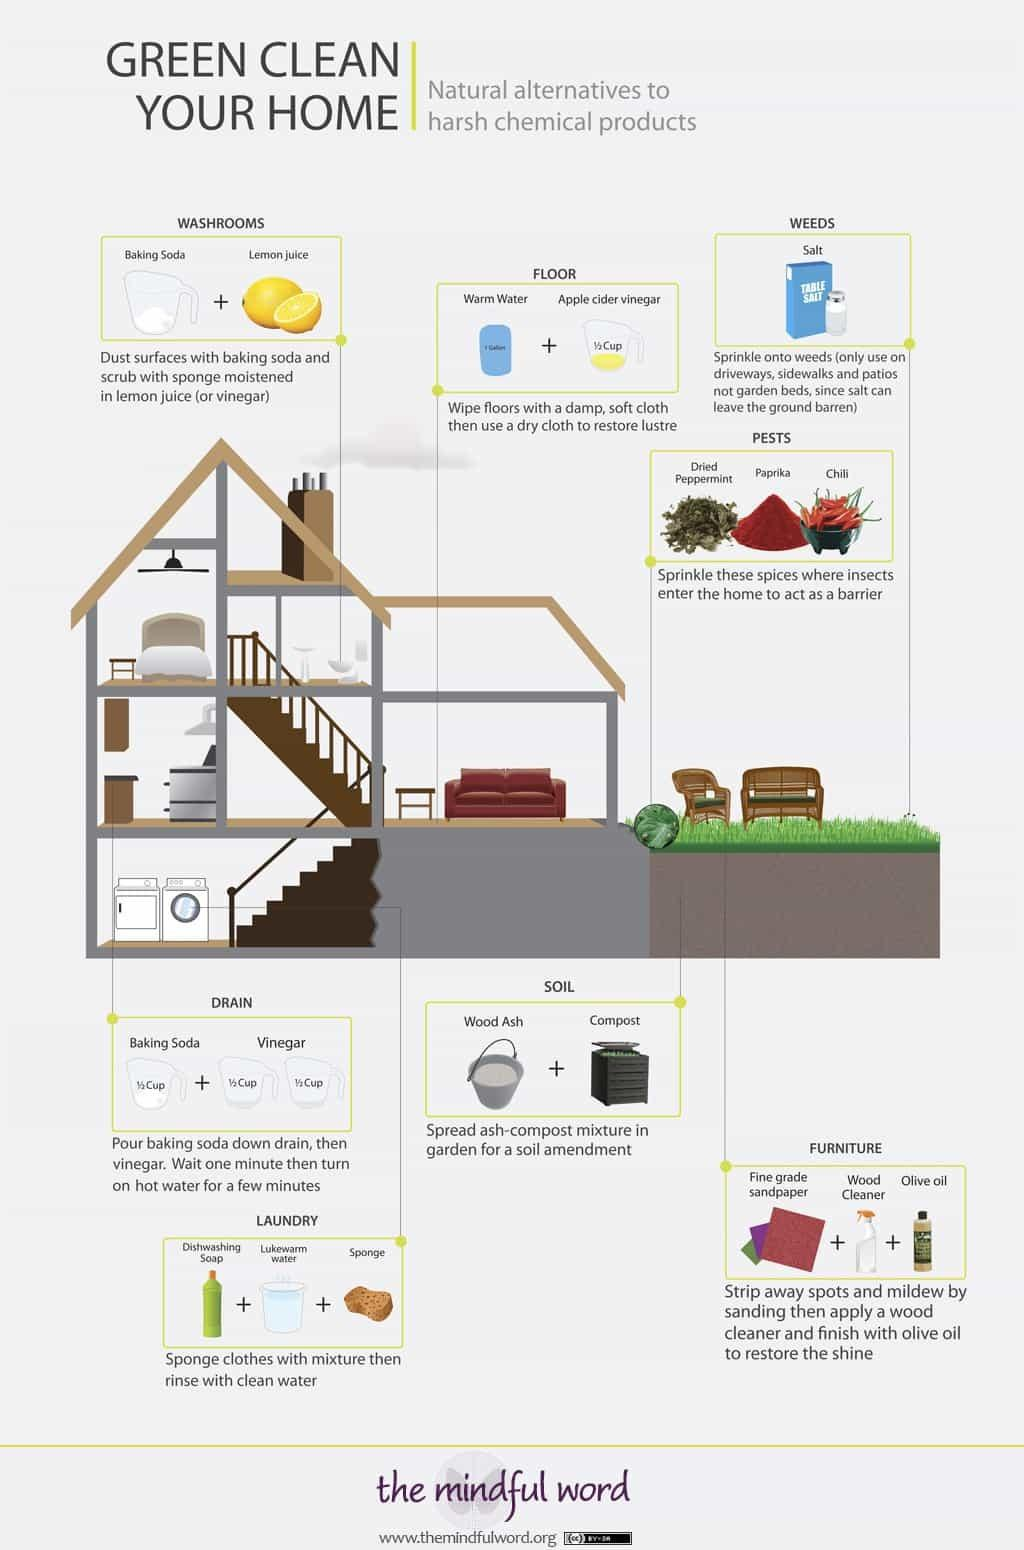 Green Clean Your Home Natural Alternatives Harsh